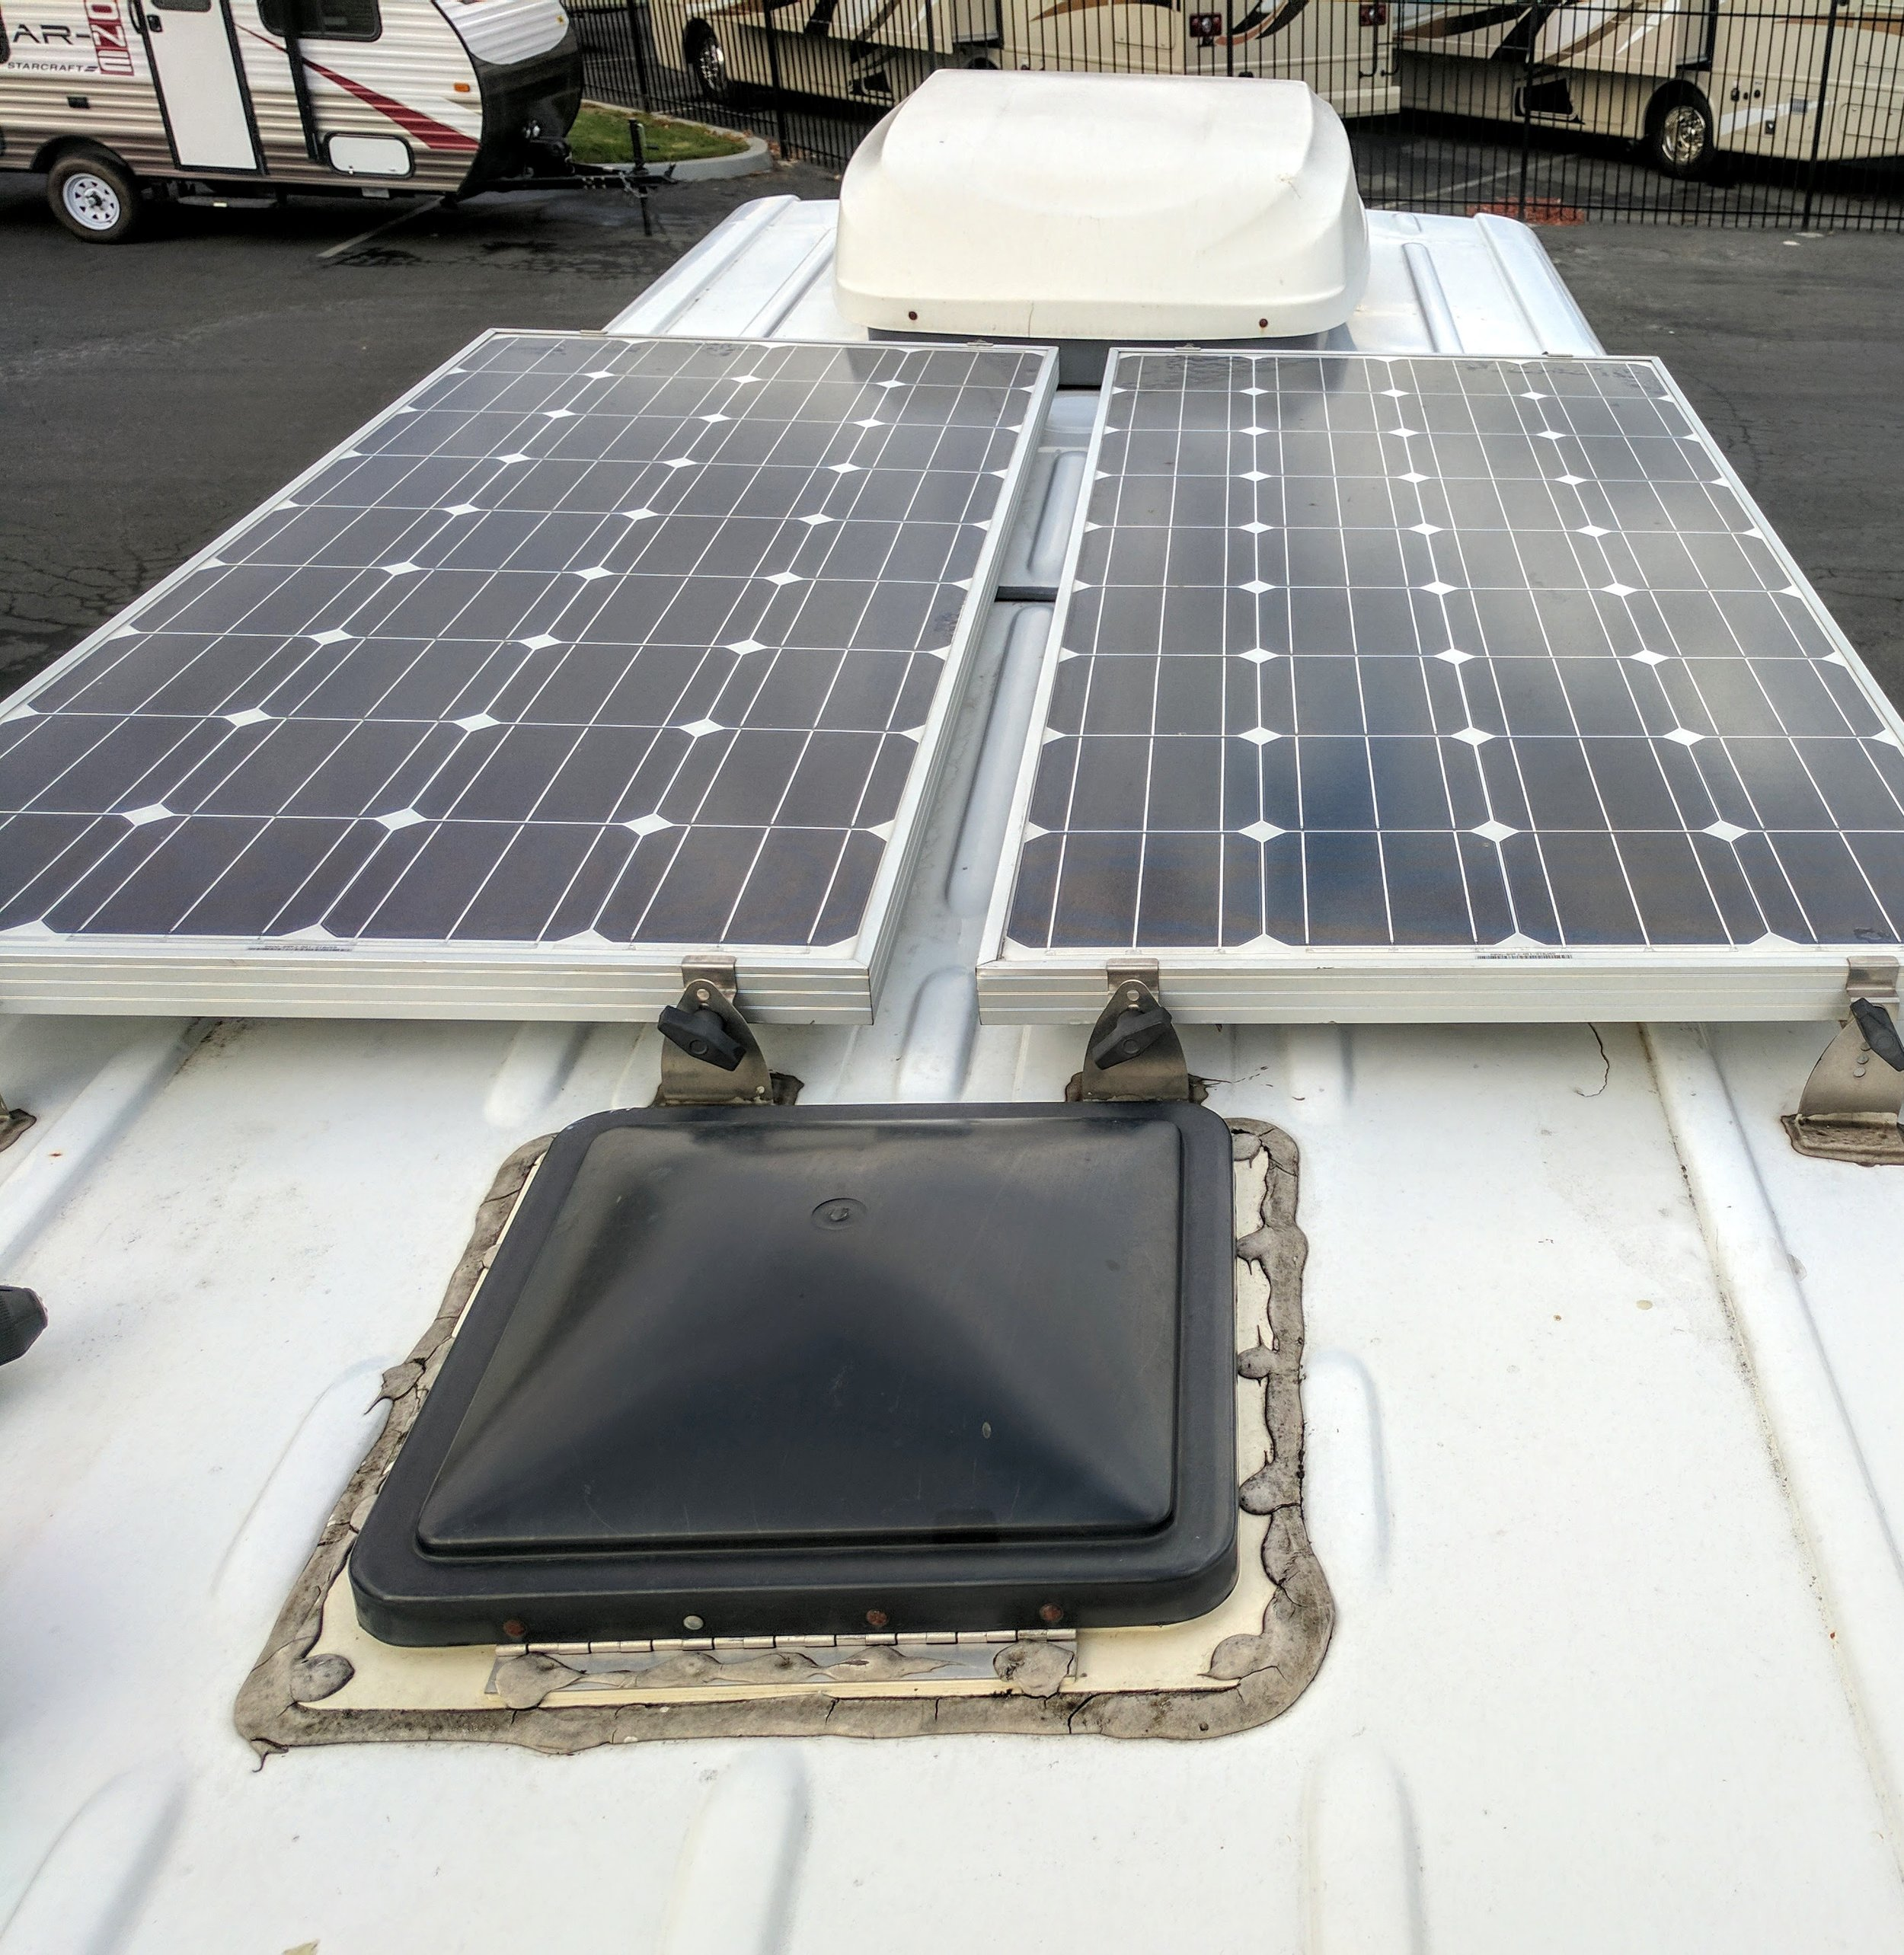 Speaking of AM Solar, I had them install 320 watts of solar panels to the roof. They generally do a great job of keeping my gadgets all charged up (and my lights on and water running) even when the van has been parked for days on end.